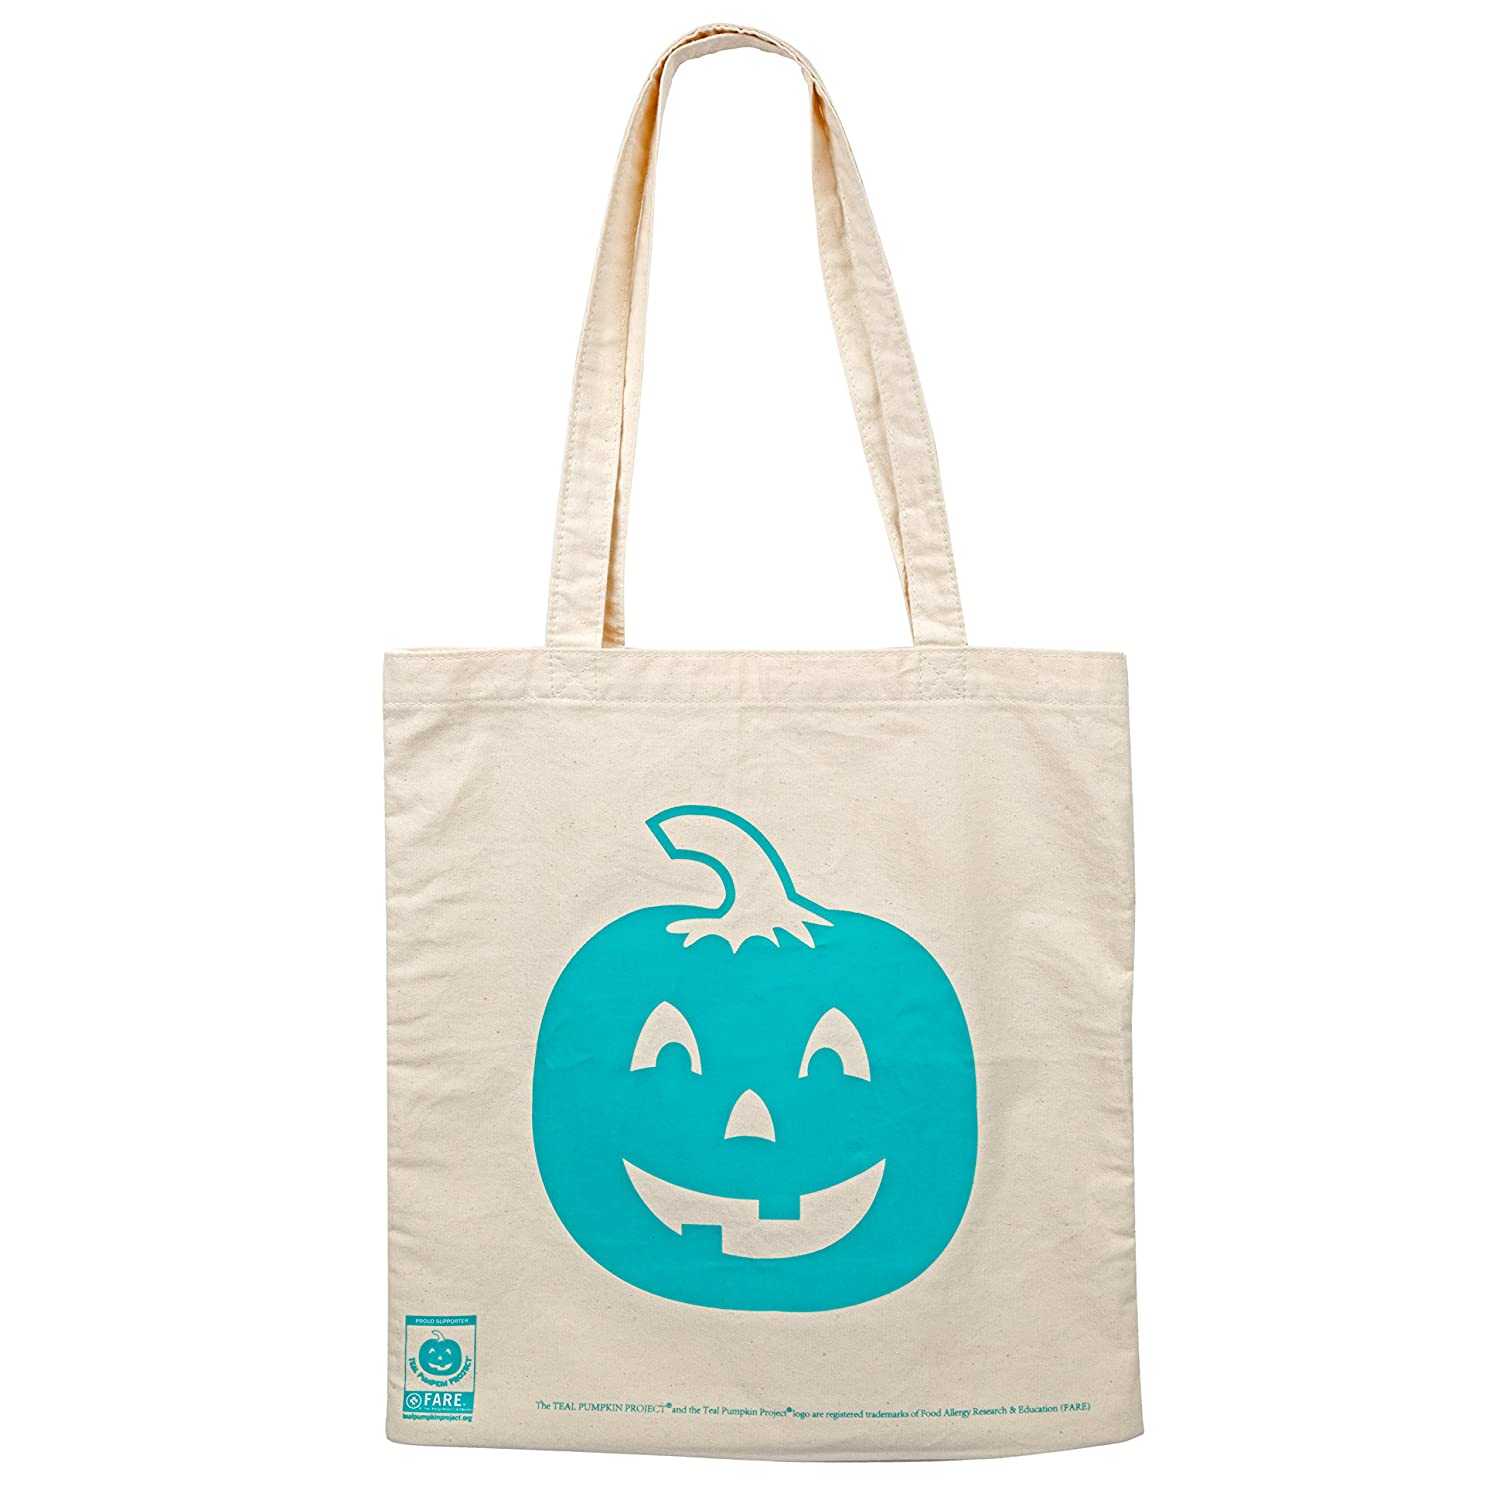 Teal Pumpkin Project Halloween Trick or Treat Bag - All Sales Supports F.A.R.E.